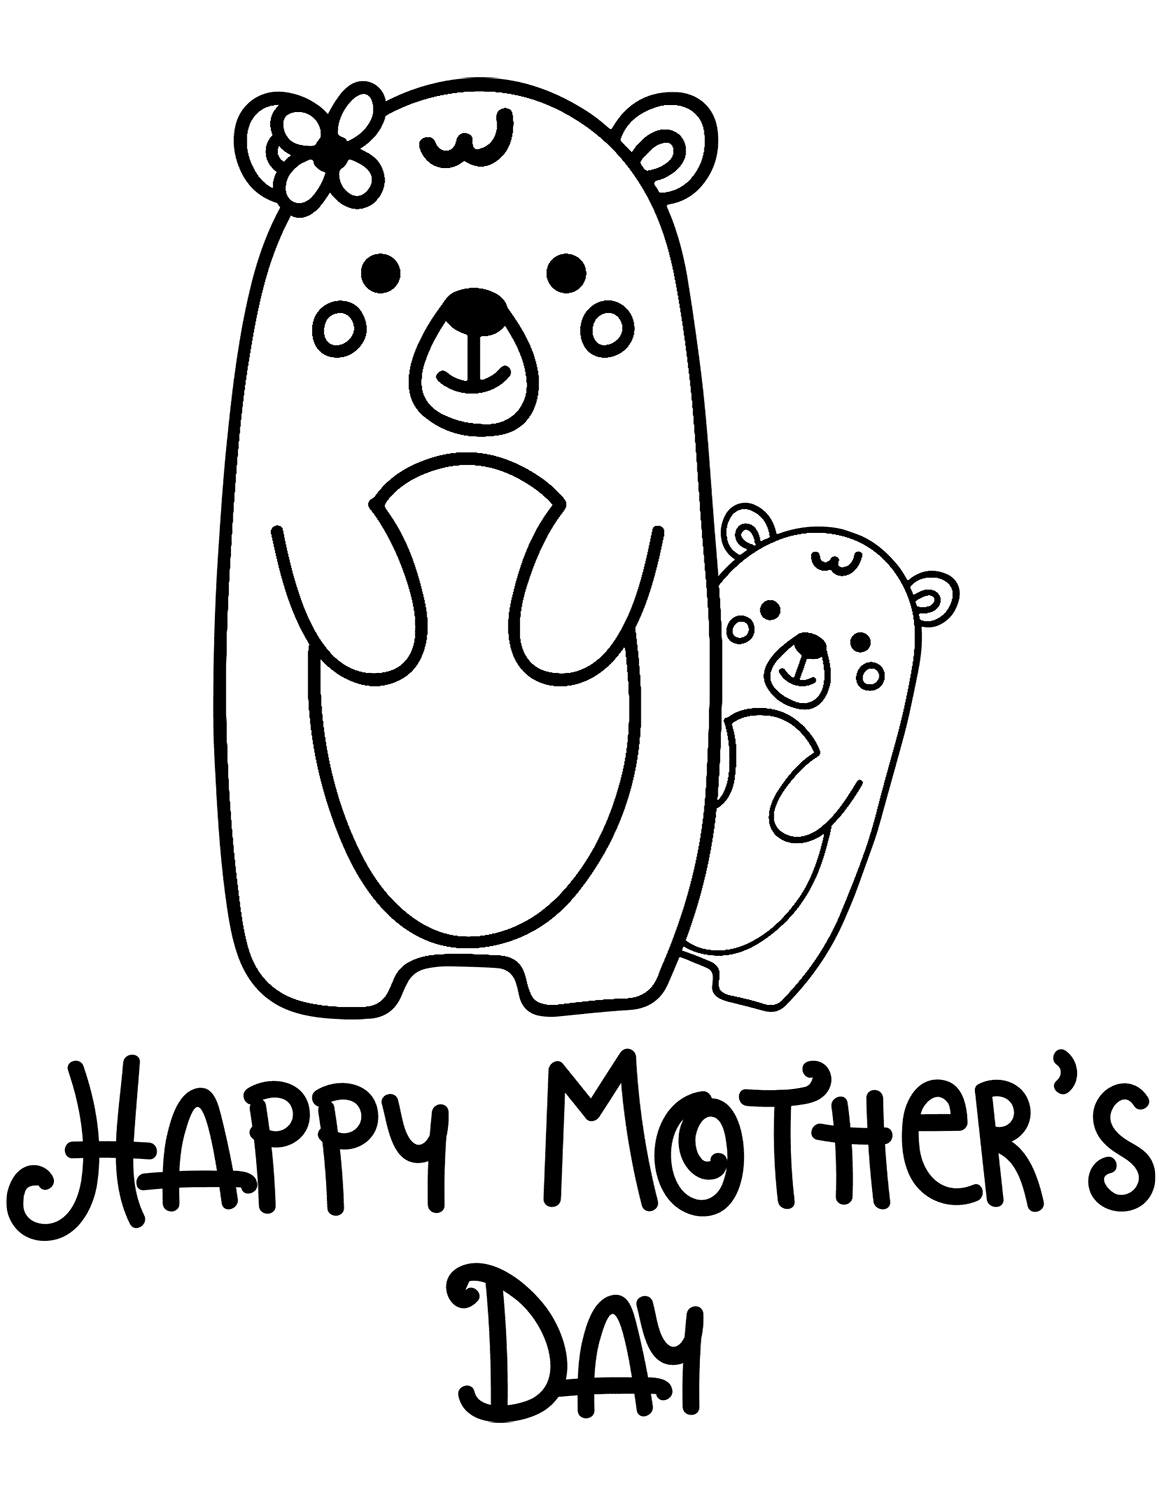 mothers day coloring pages mother39s day coloring pages coloring day pages mothers